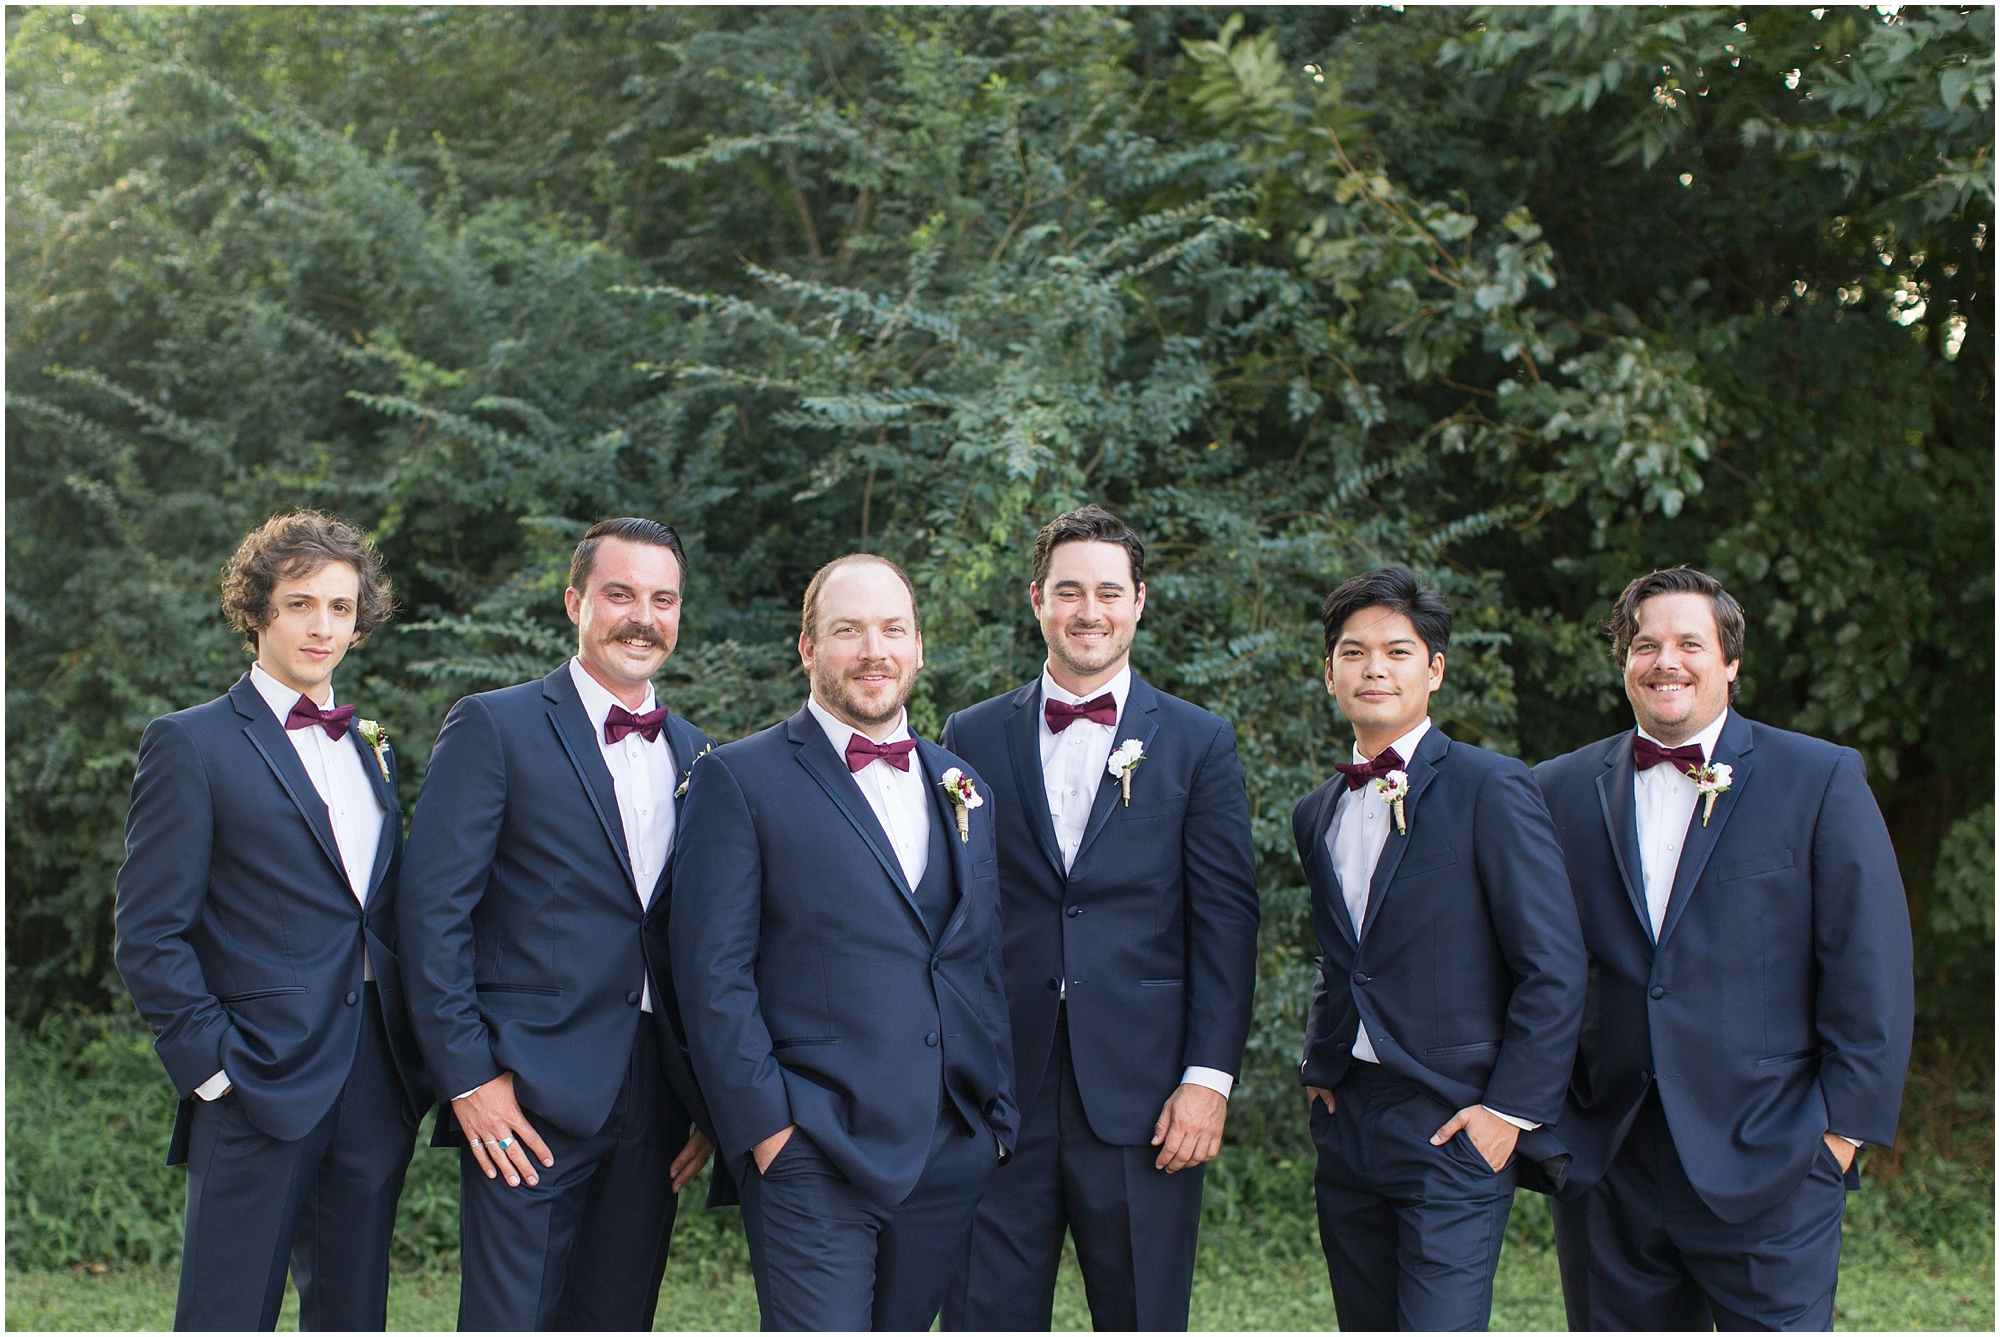 groom and groomsmen photography on wedding day boho wedding at The Tar Roof virginia beach wedding photography jessica ryan photography